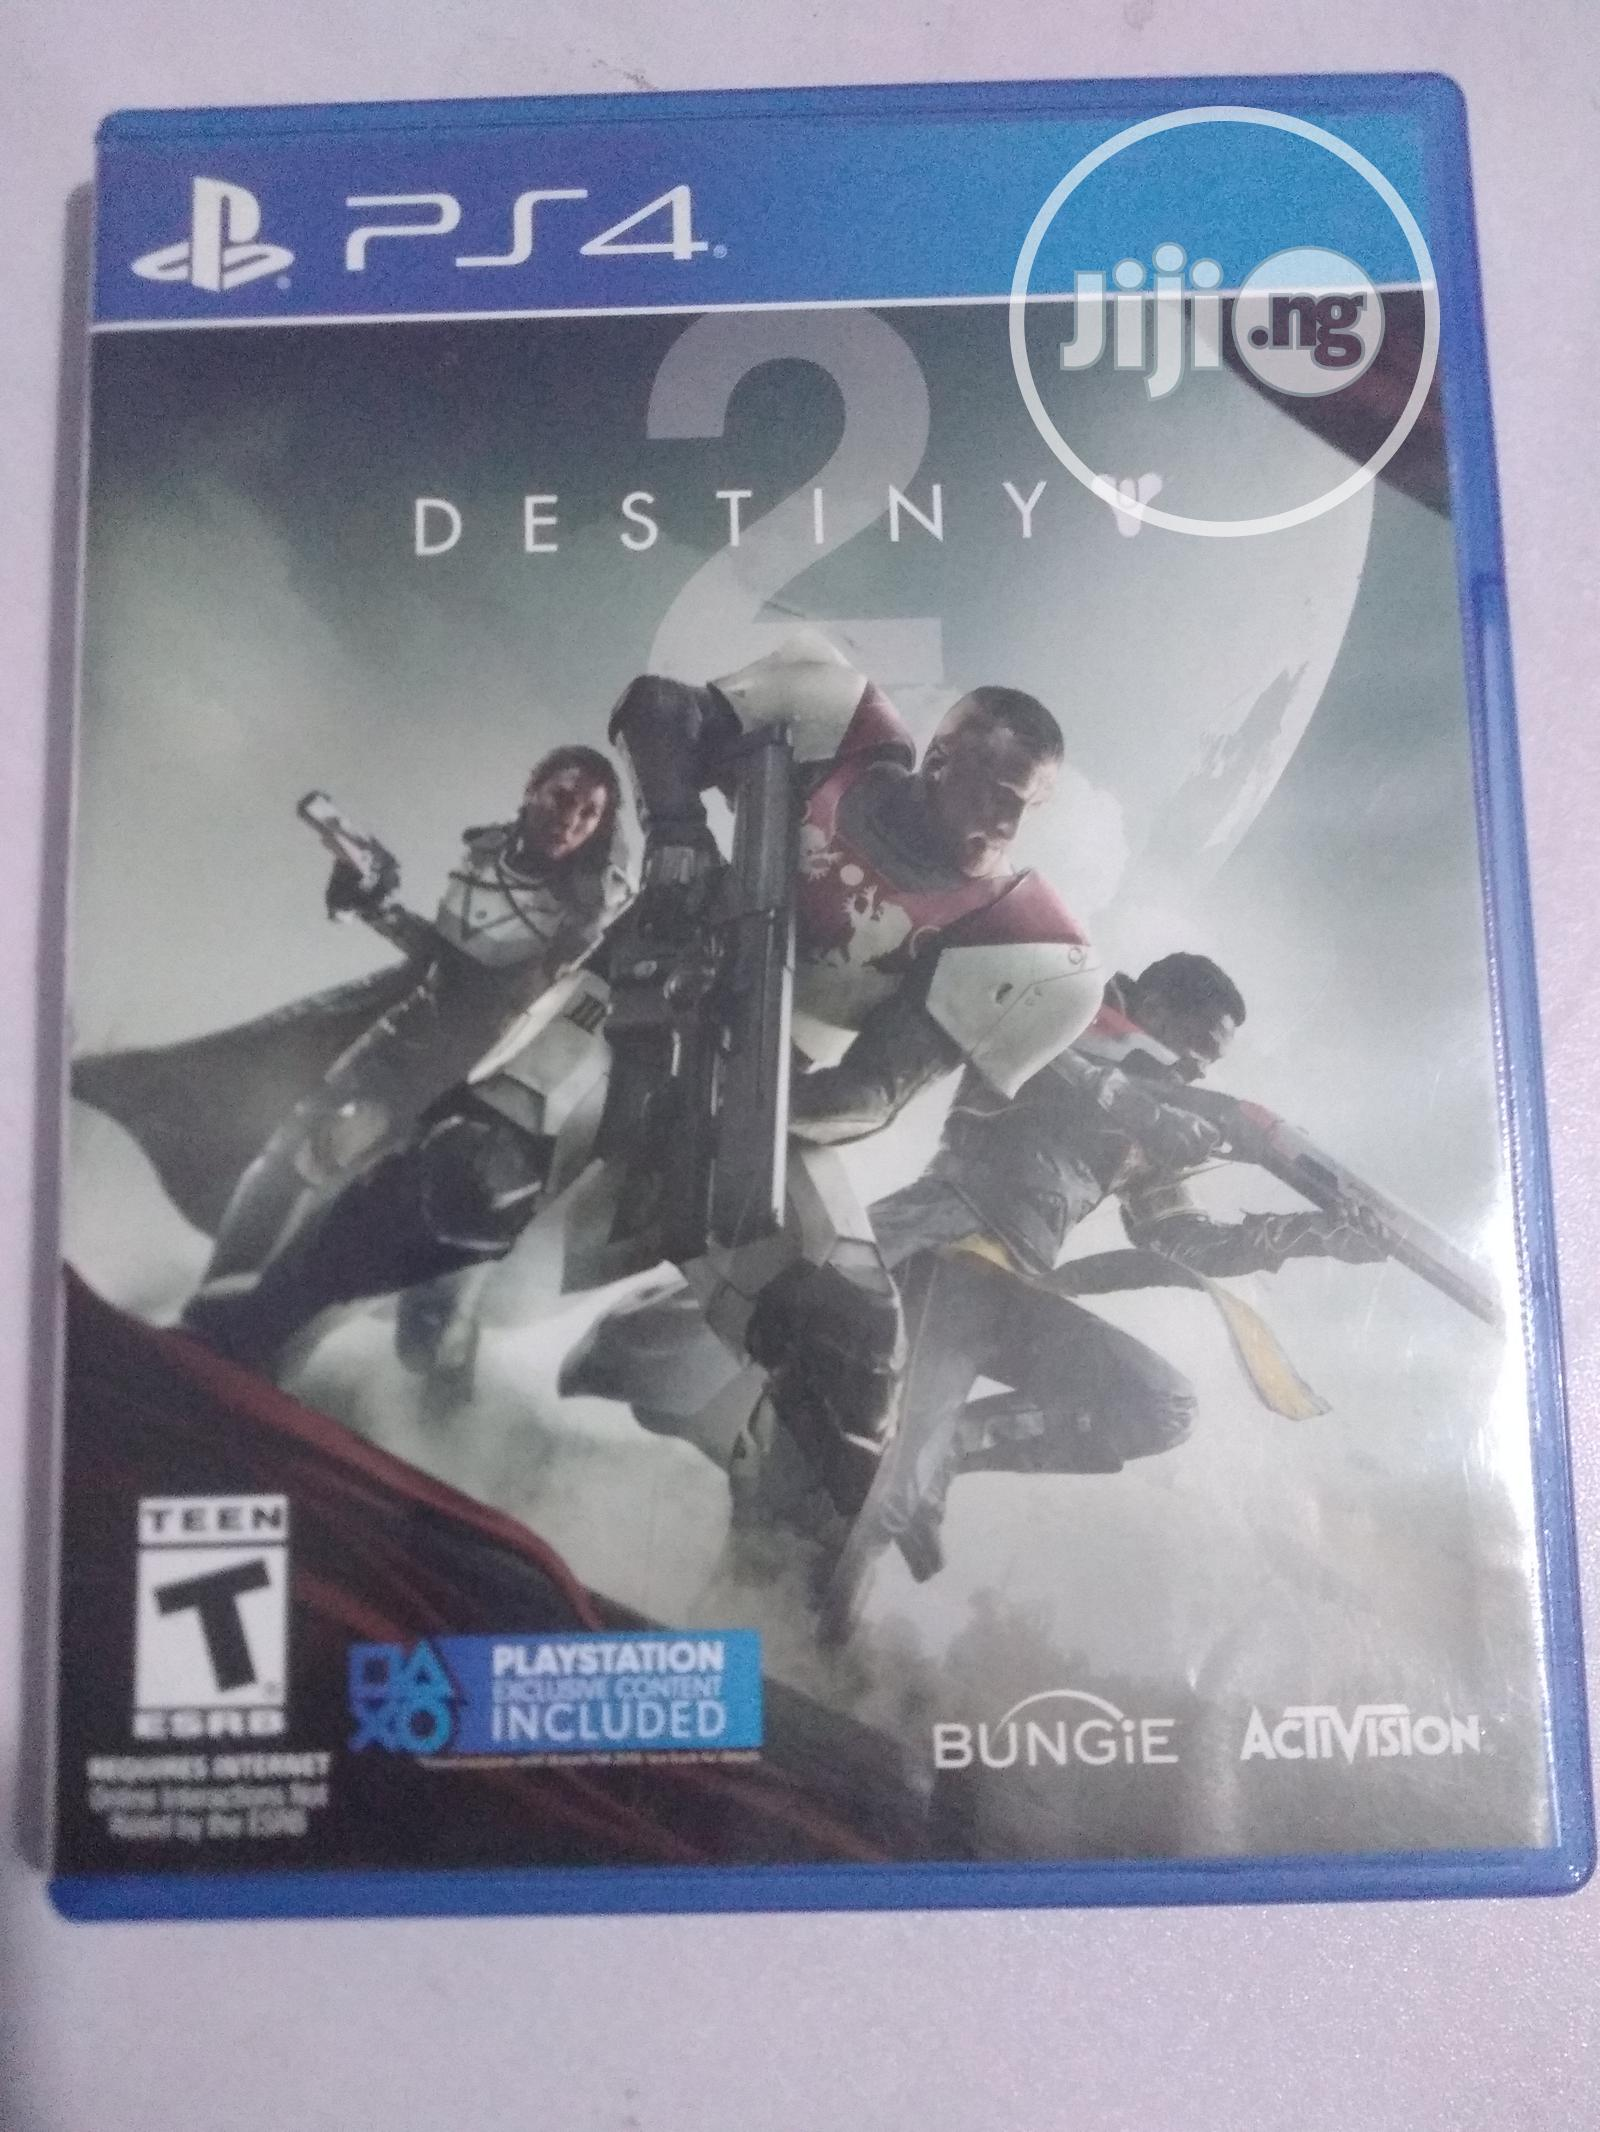 Archive: Destiny 2 With Redemption Codes